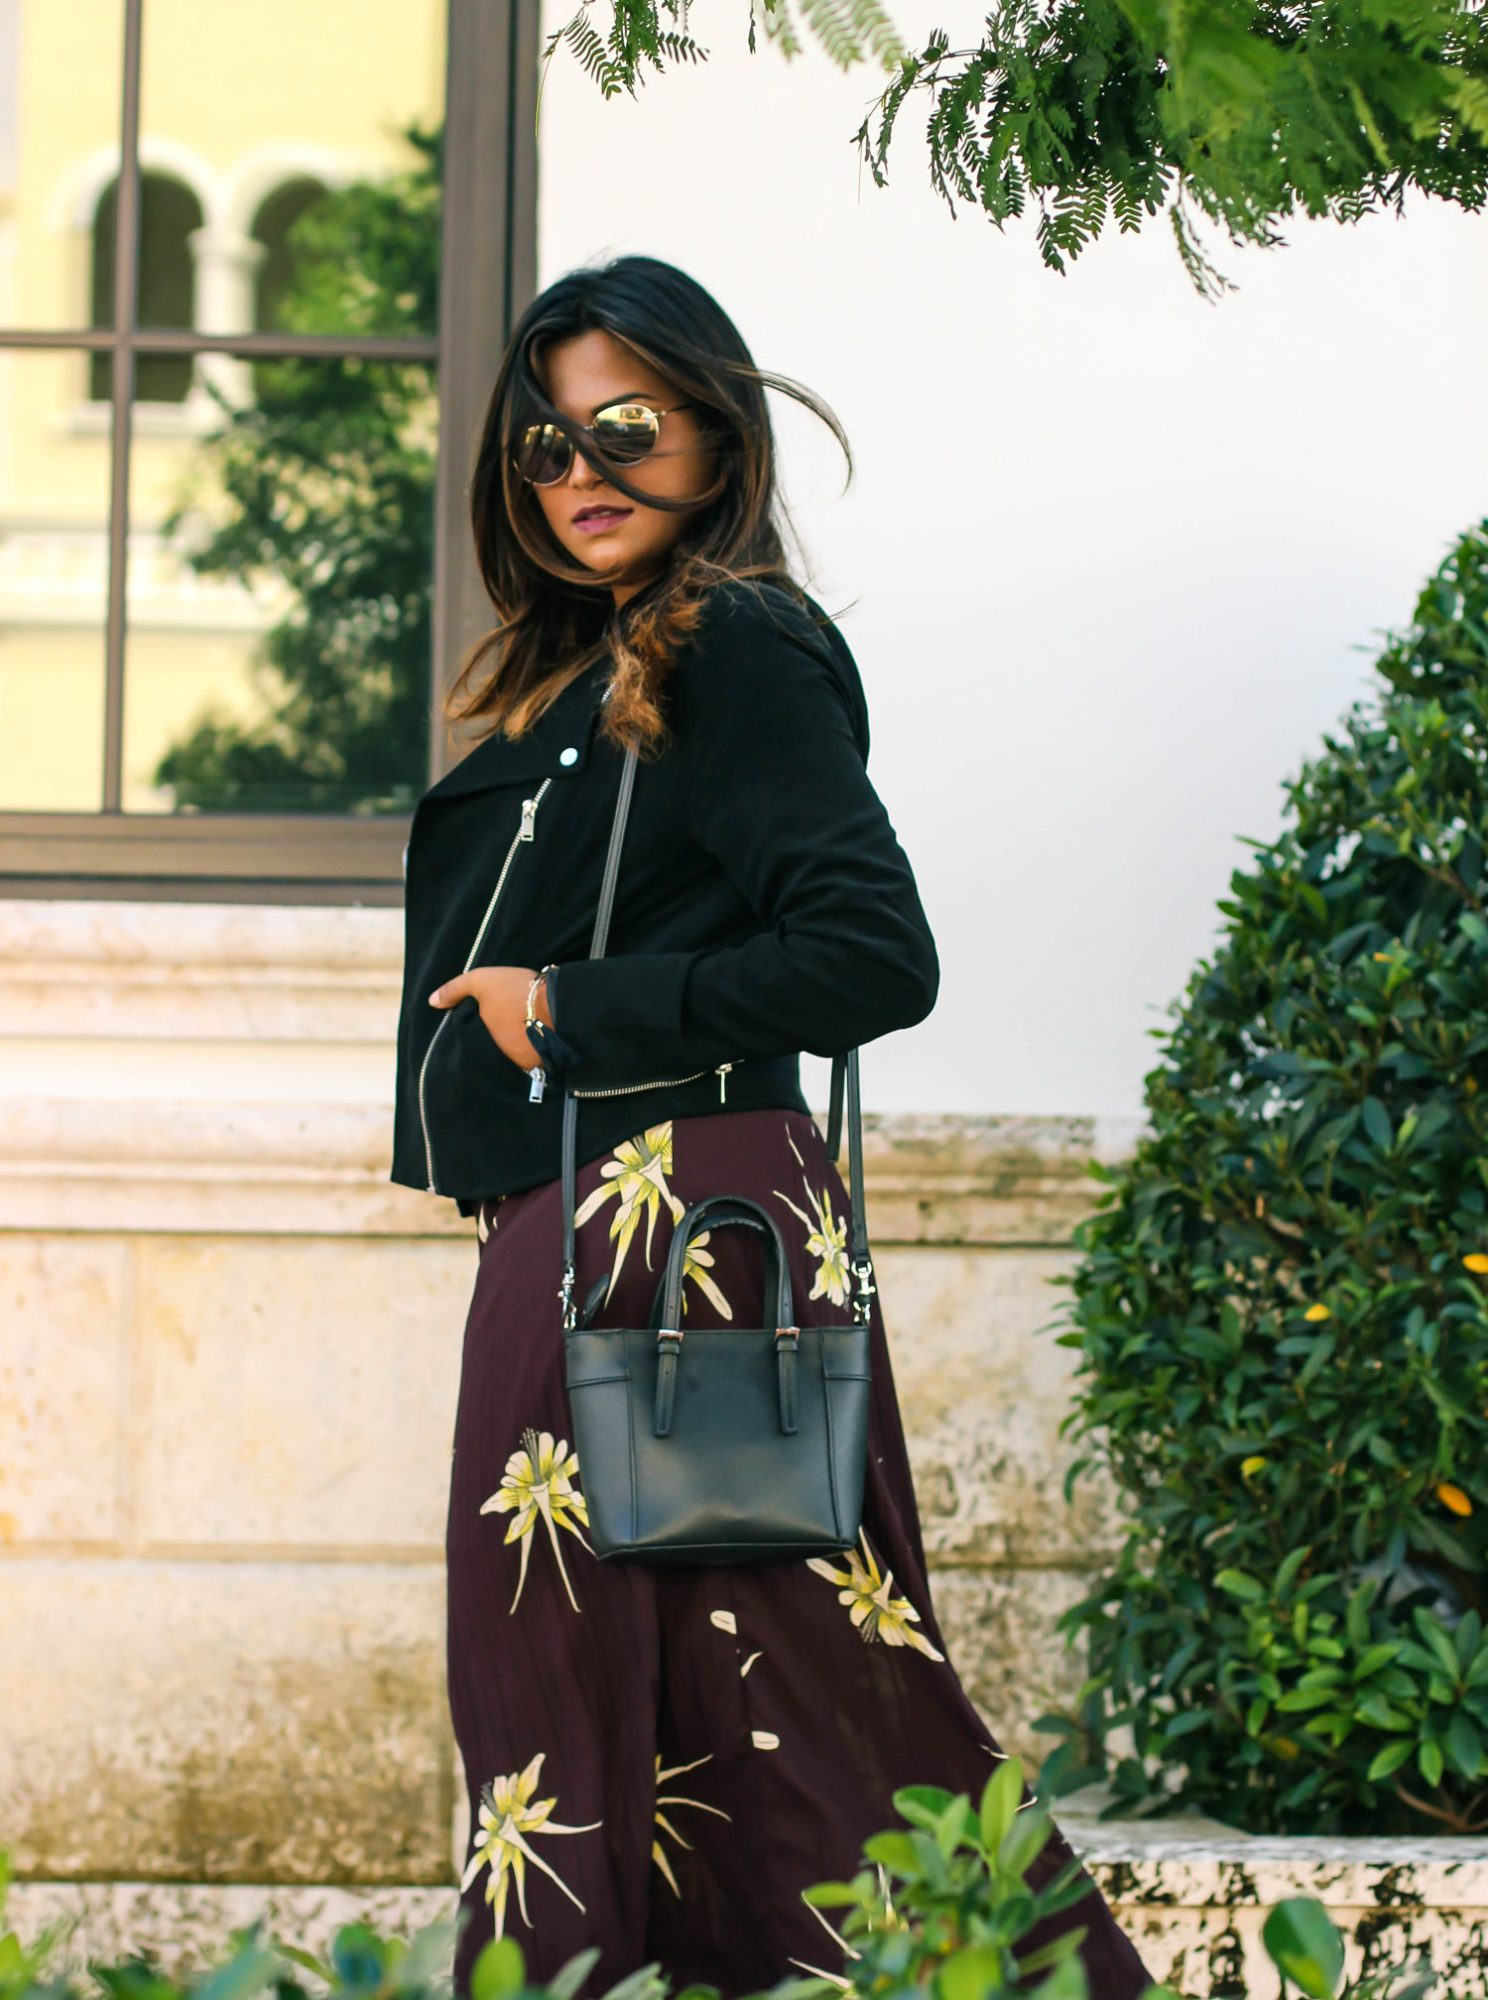 fall-fashion-burgundy-skirt-black-moto-jacket